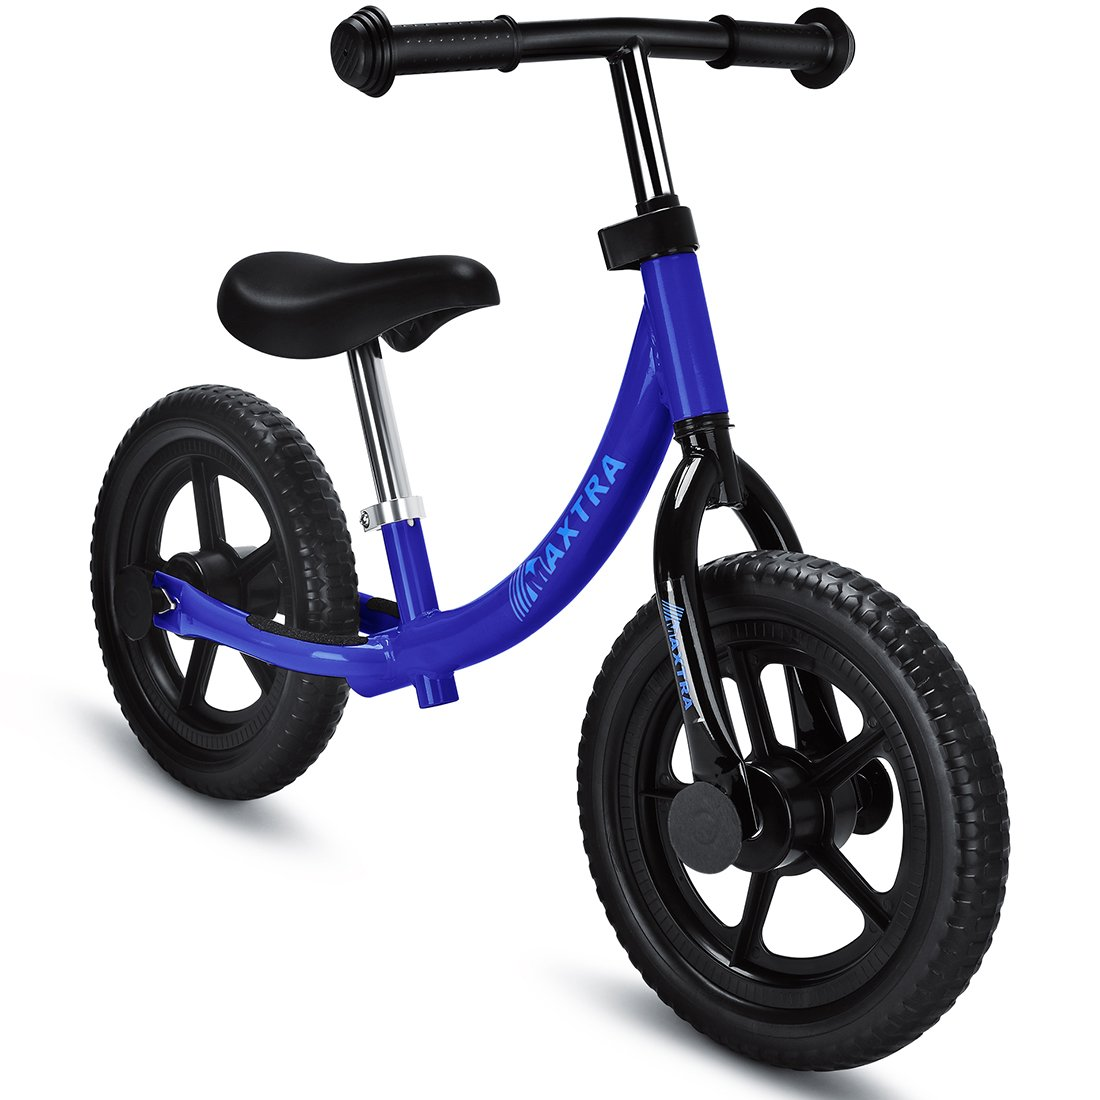 Maxtra Lightweight Balance Bike No Pedal Bicycle Adjustable Handlebar and Seat for Ages 2 to 5 Year Old Dark Blue